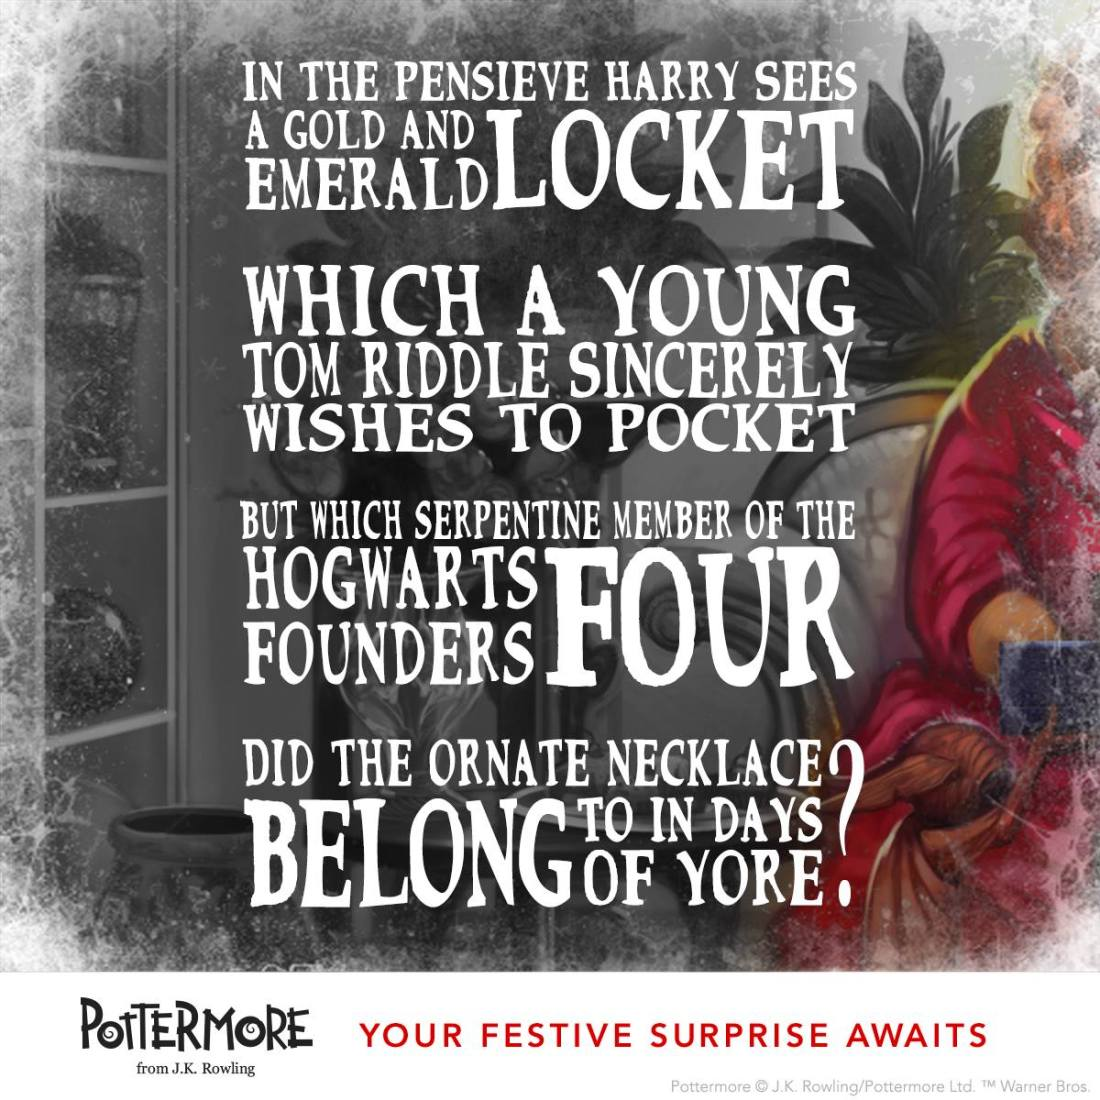 Day 8 of J.K. Rowling's Twelve Days of Christmas Harry Potter Moments